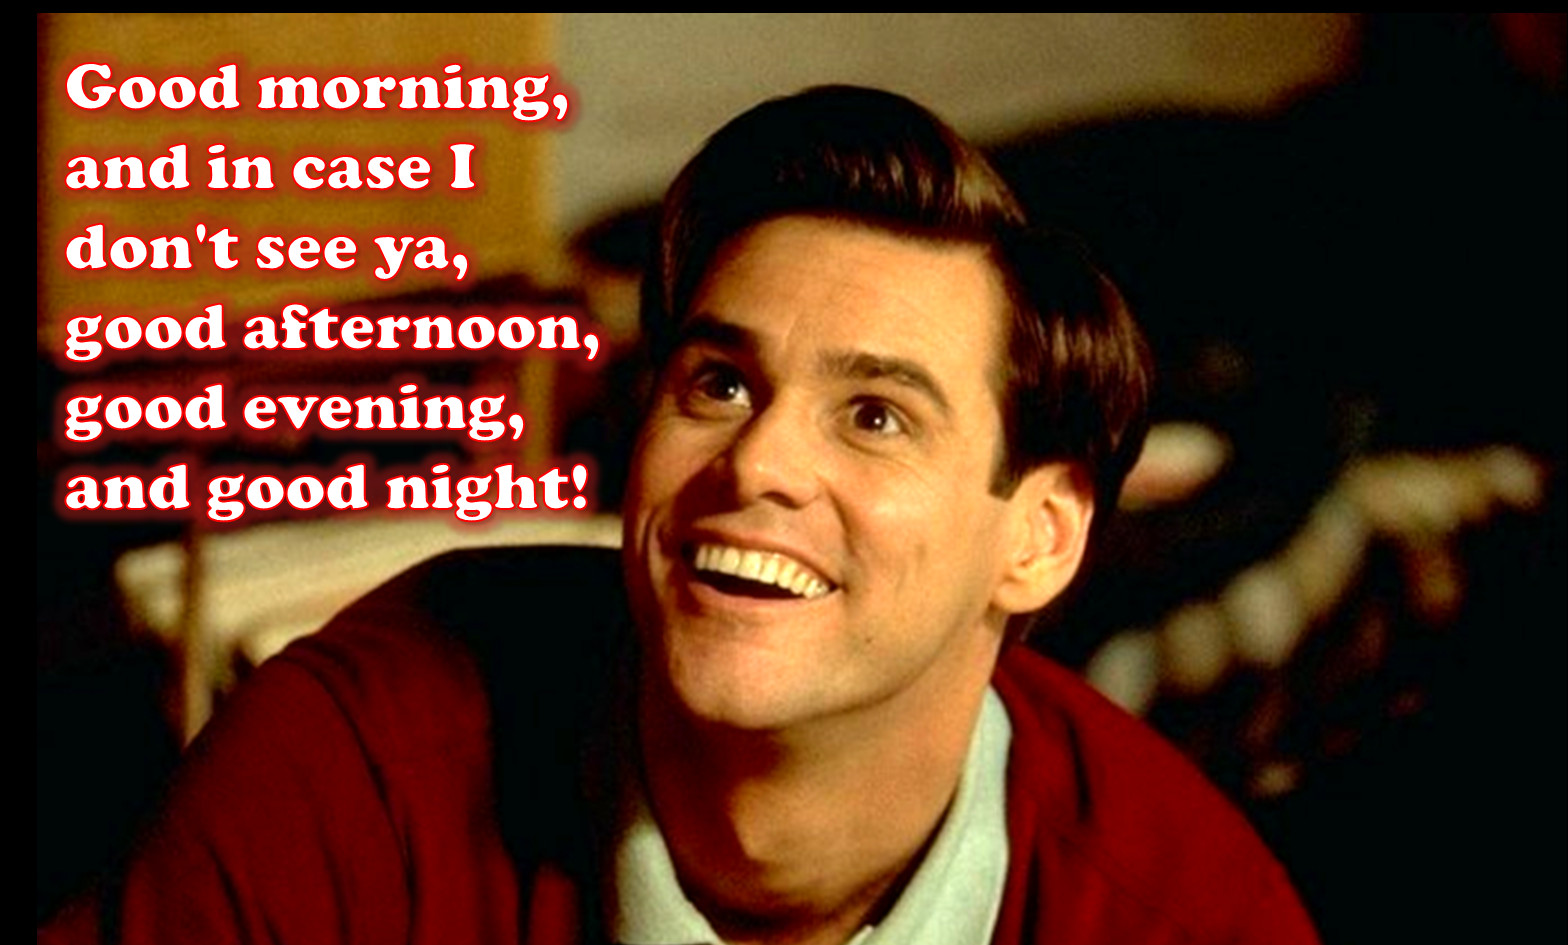 Best Movie Quotes Funny  Jim Carrey Quotes From Movies QuotesGram